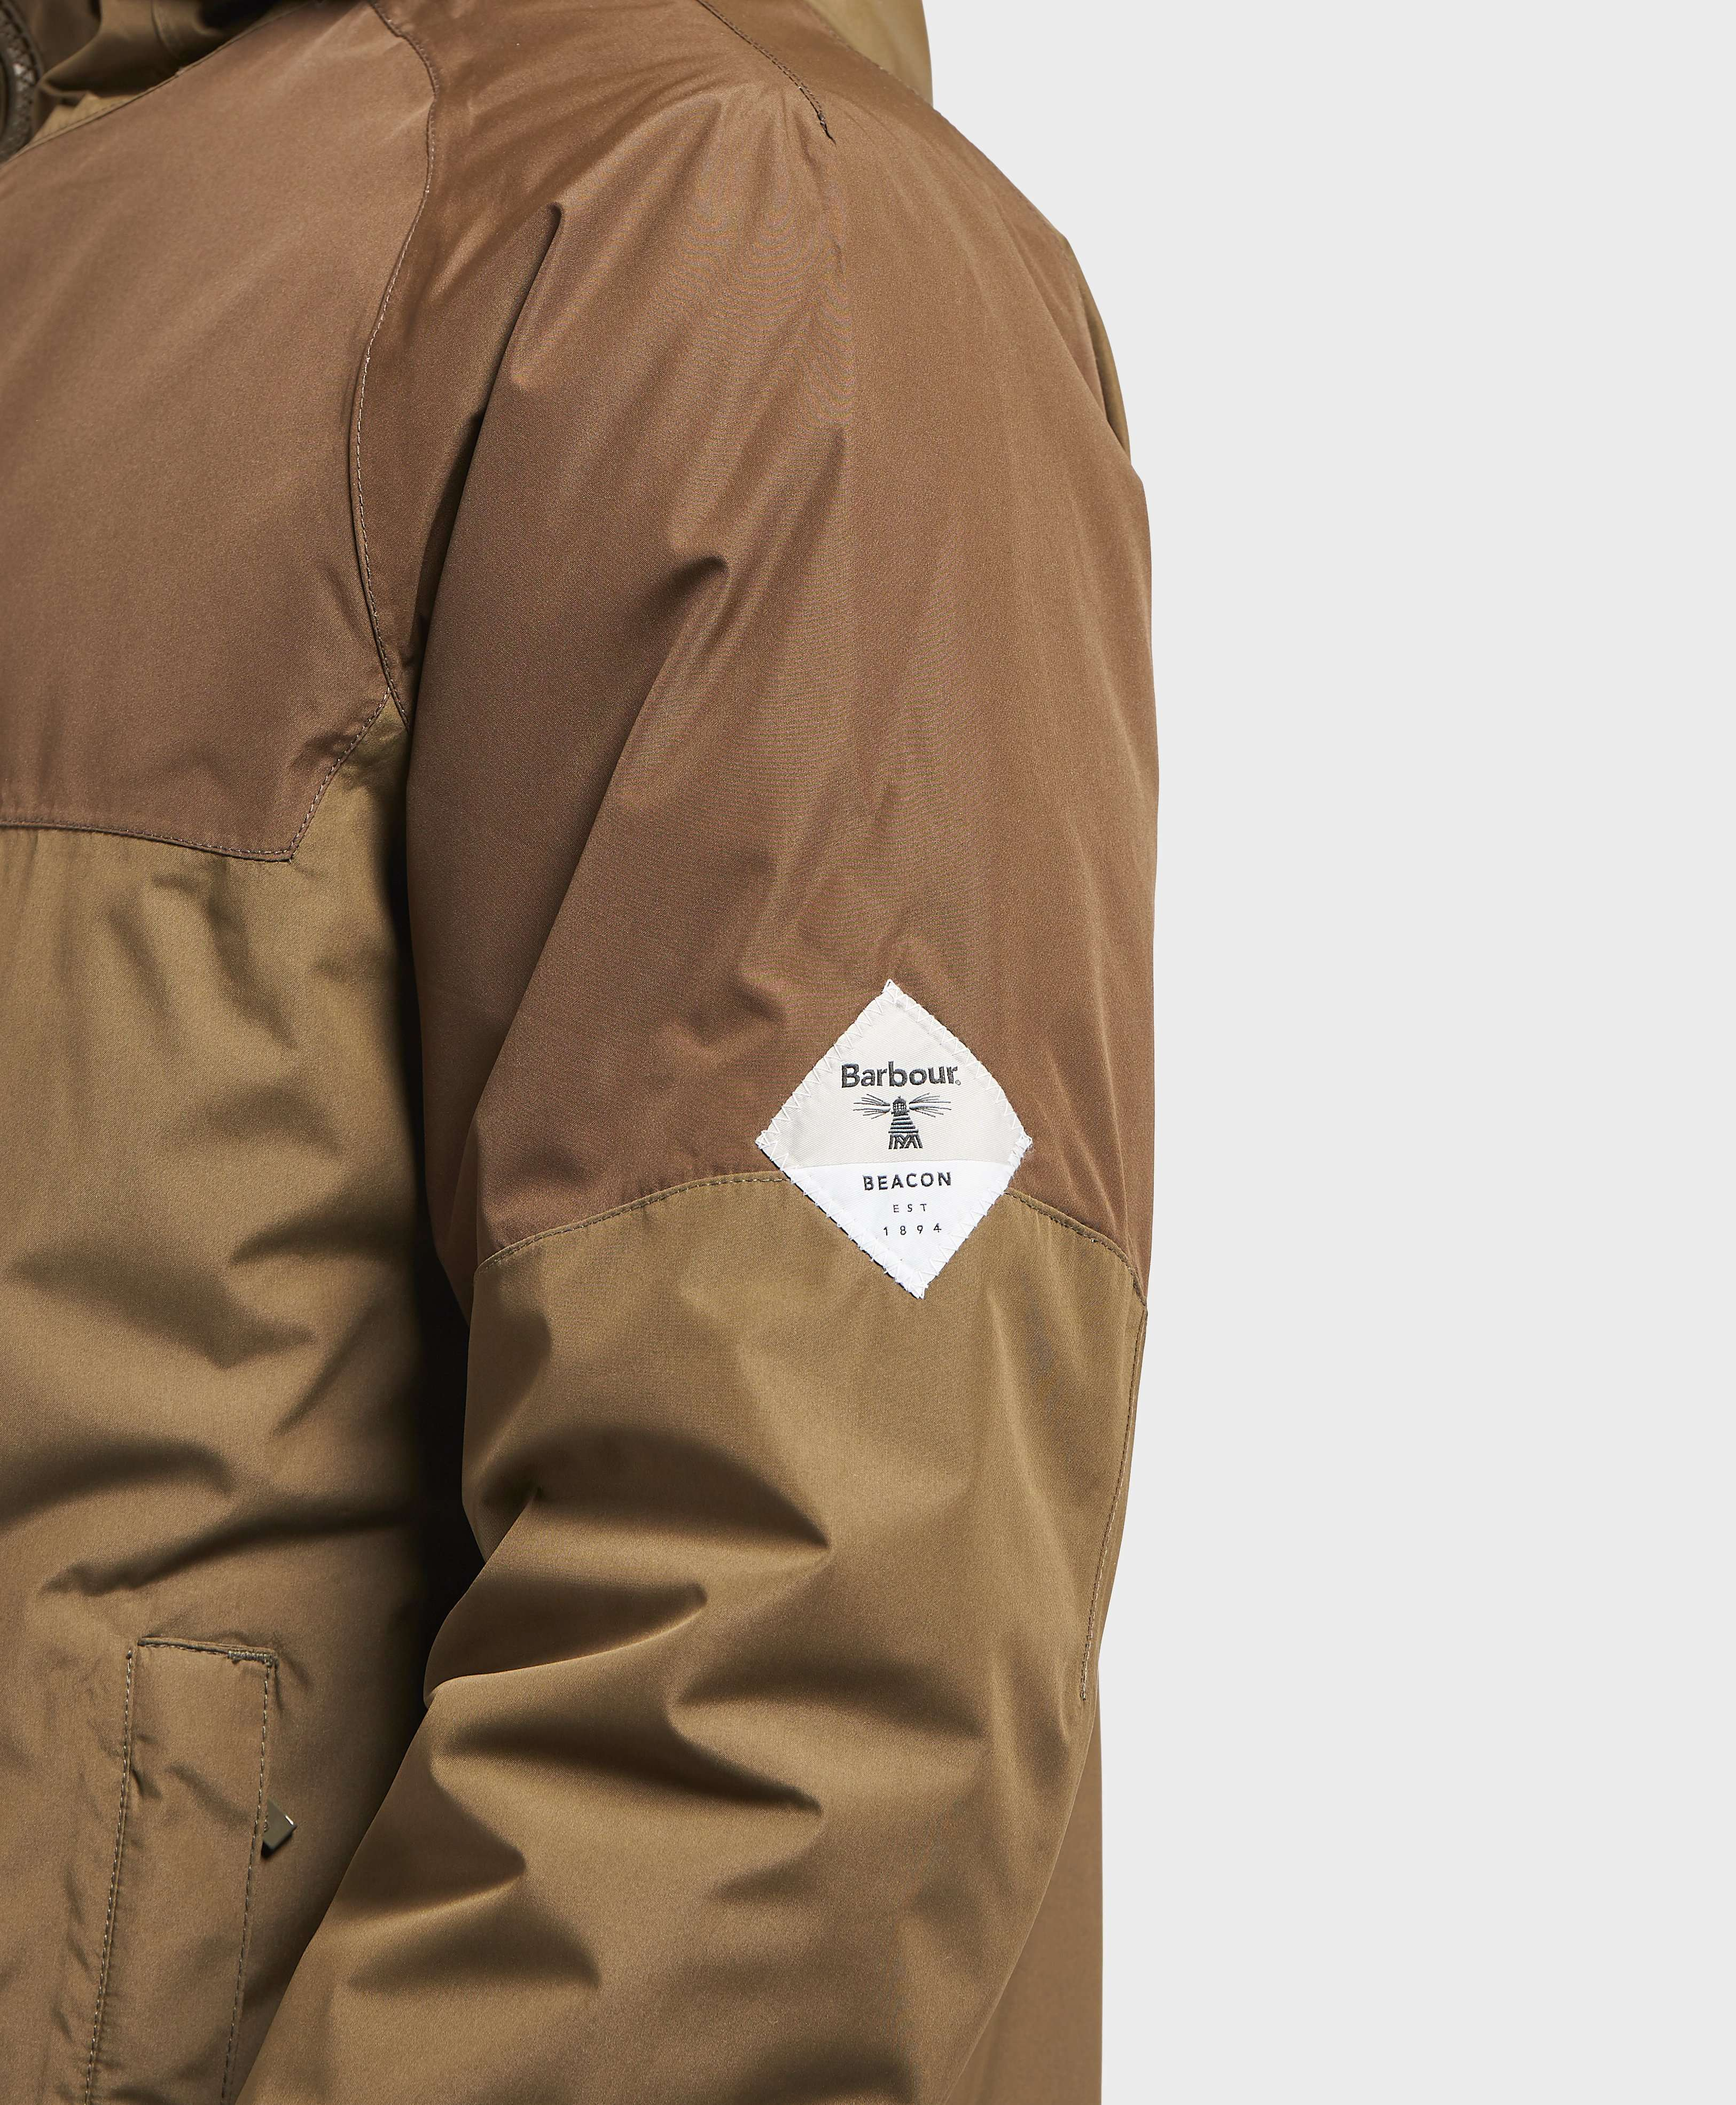 Barbour Beacon Trout Lightweight Jacket